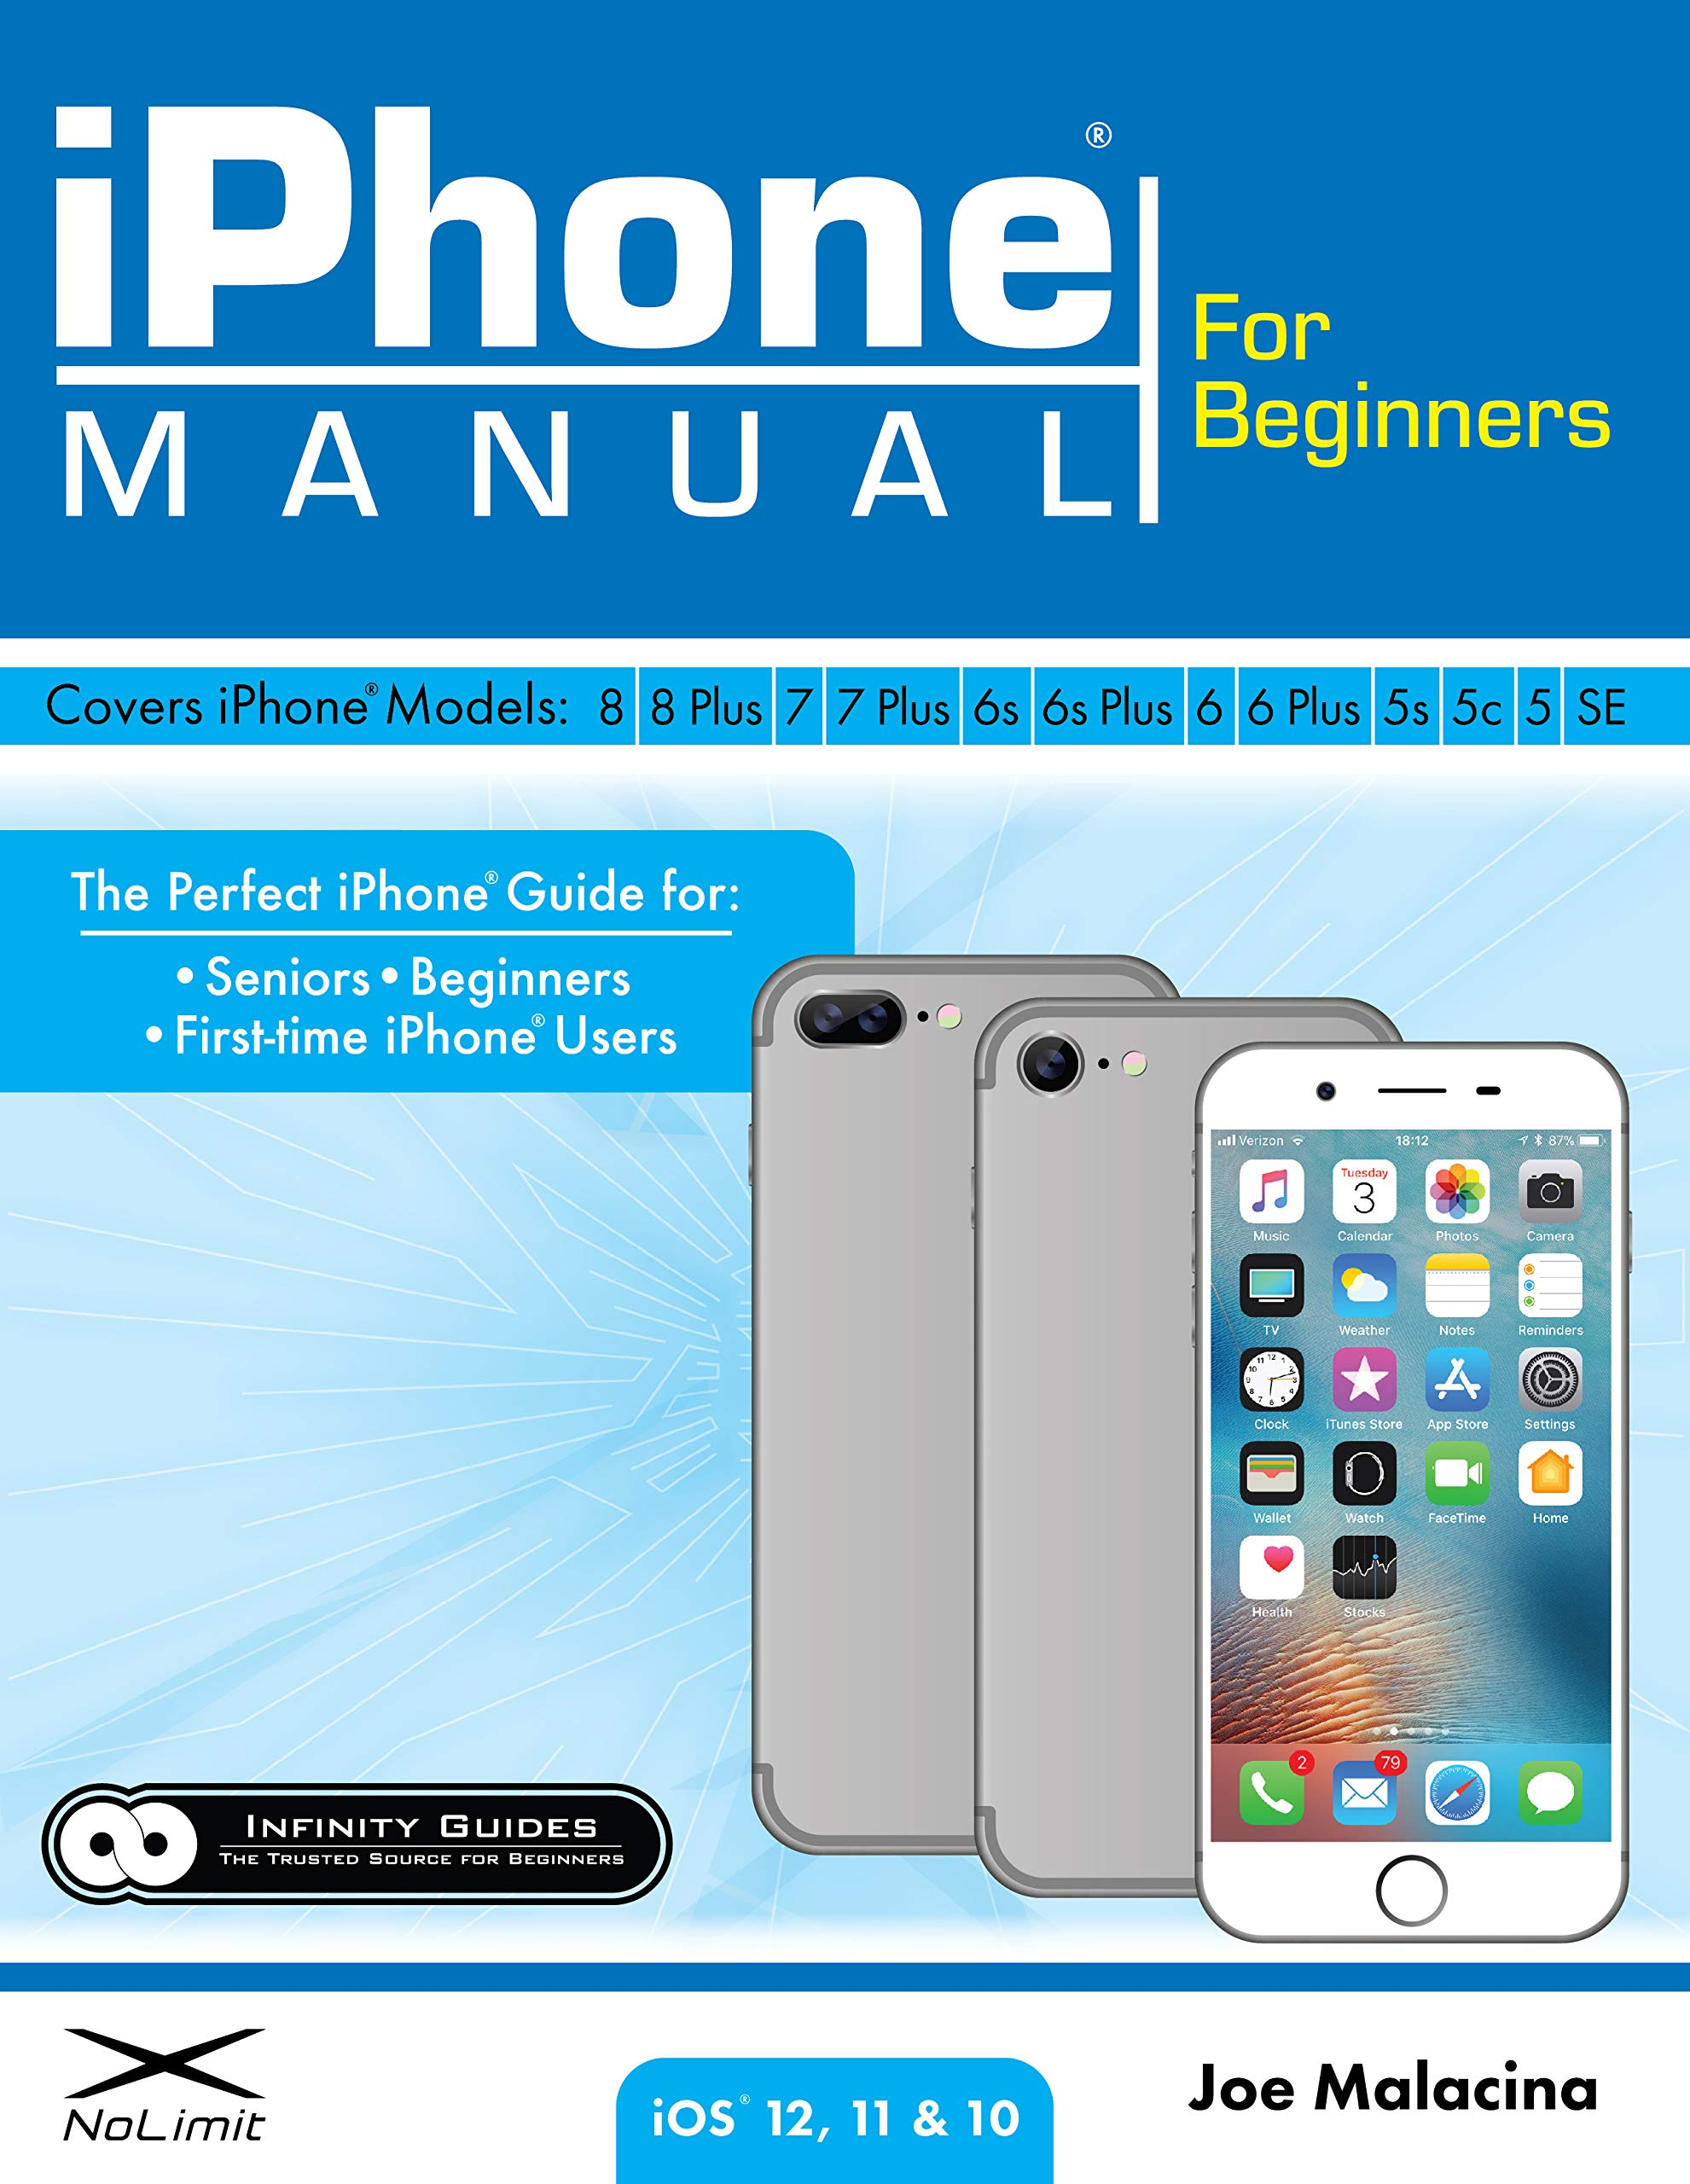 iPhone Manual for Beginners - The Perfect iPhone Guide for Seniors,  Beginners, & First-time iPhone Users: Joe Malacina: 9780998919645:  Amazon.com: Books